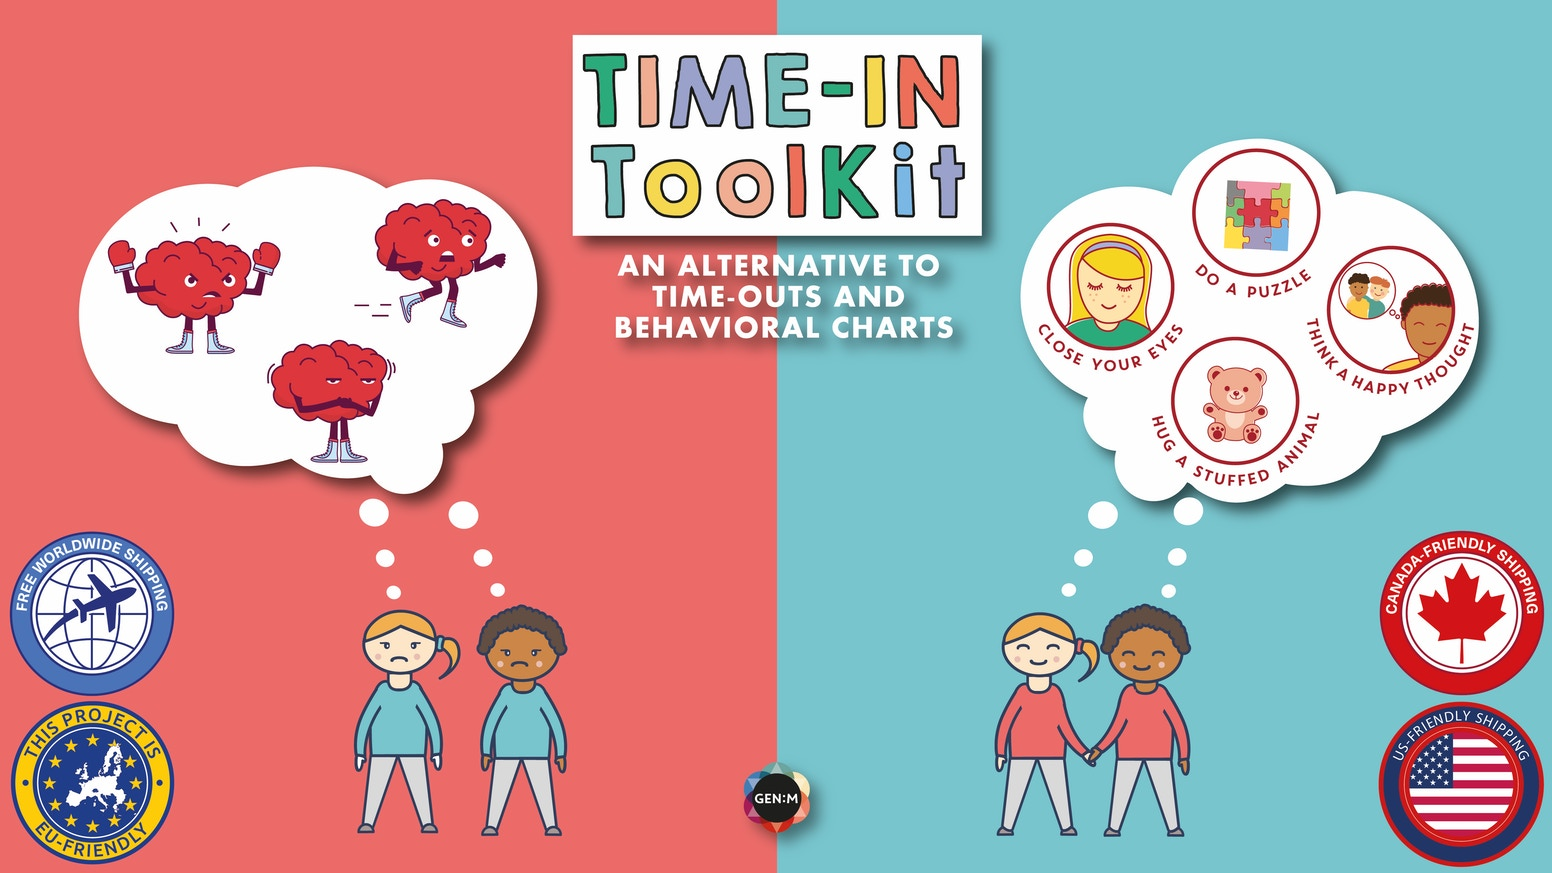 An alternative to time-outs and behavioral charts that helps parents, educators, and therapists teach children emotional regulation.